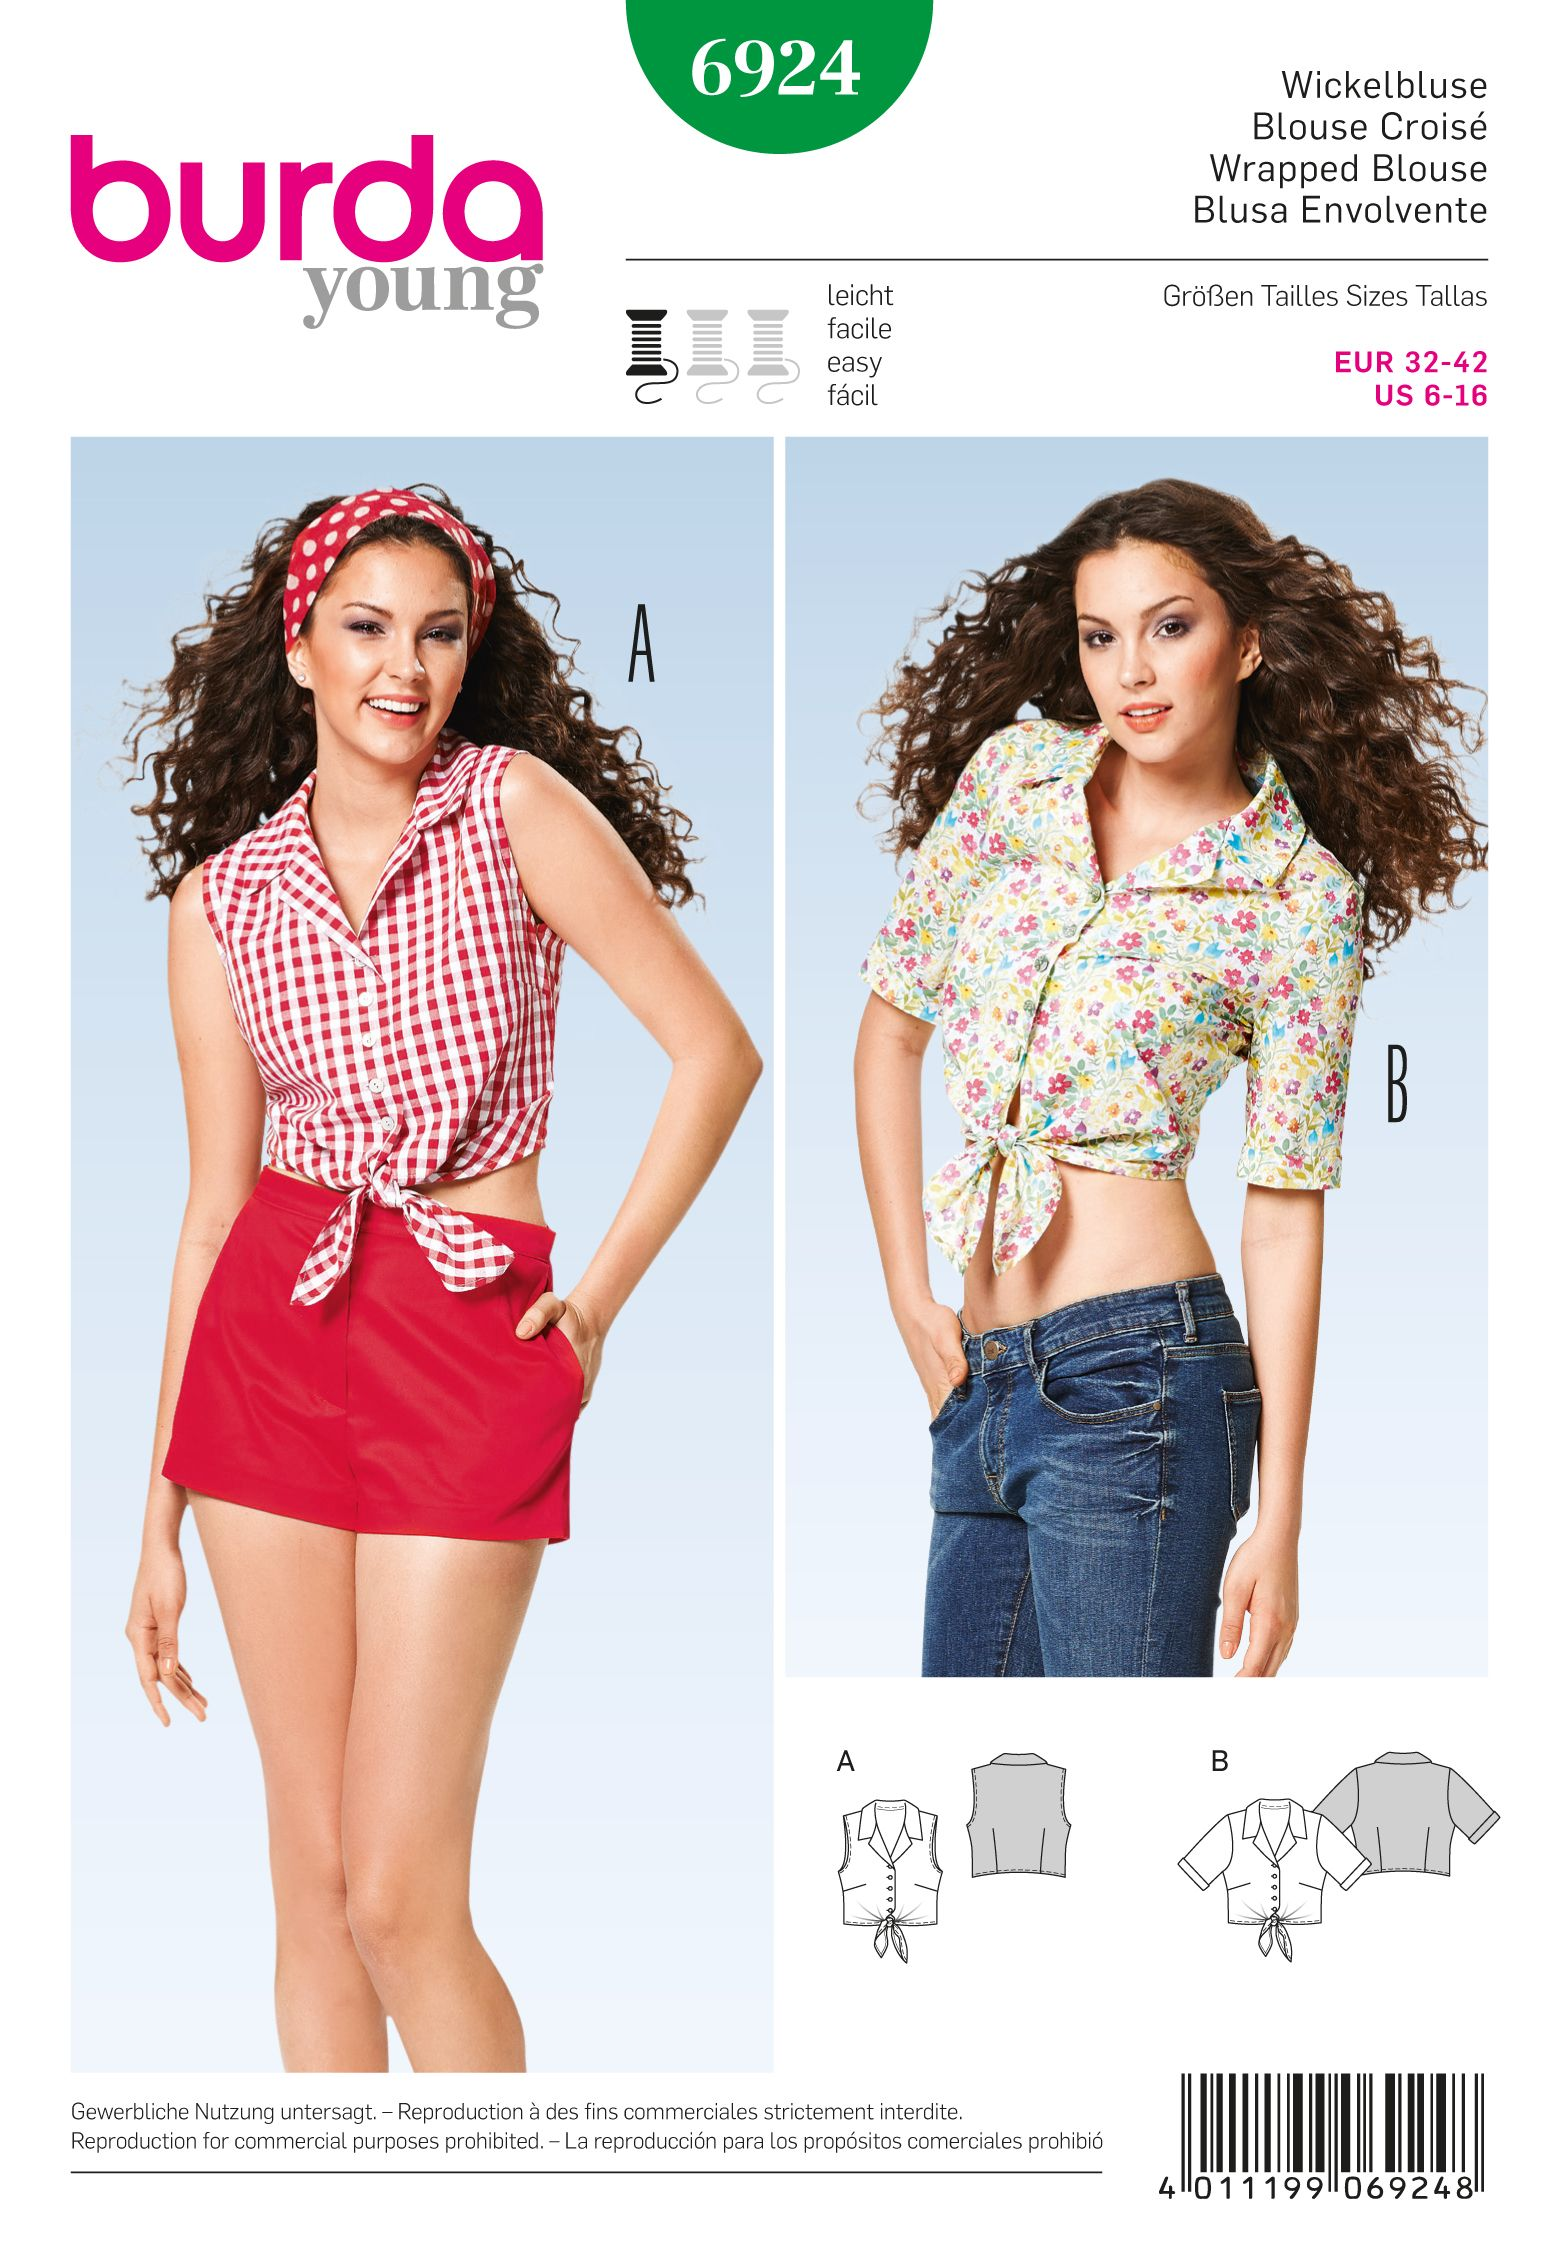 Burda 6924 cute option for a fitted blouse the fitted blouse burda 6924 from age inappropriate dressing to age inappropriate sewing jeuxipadfo Choice Image